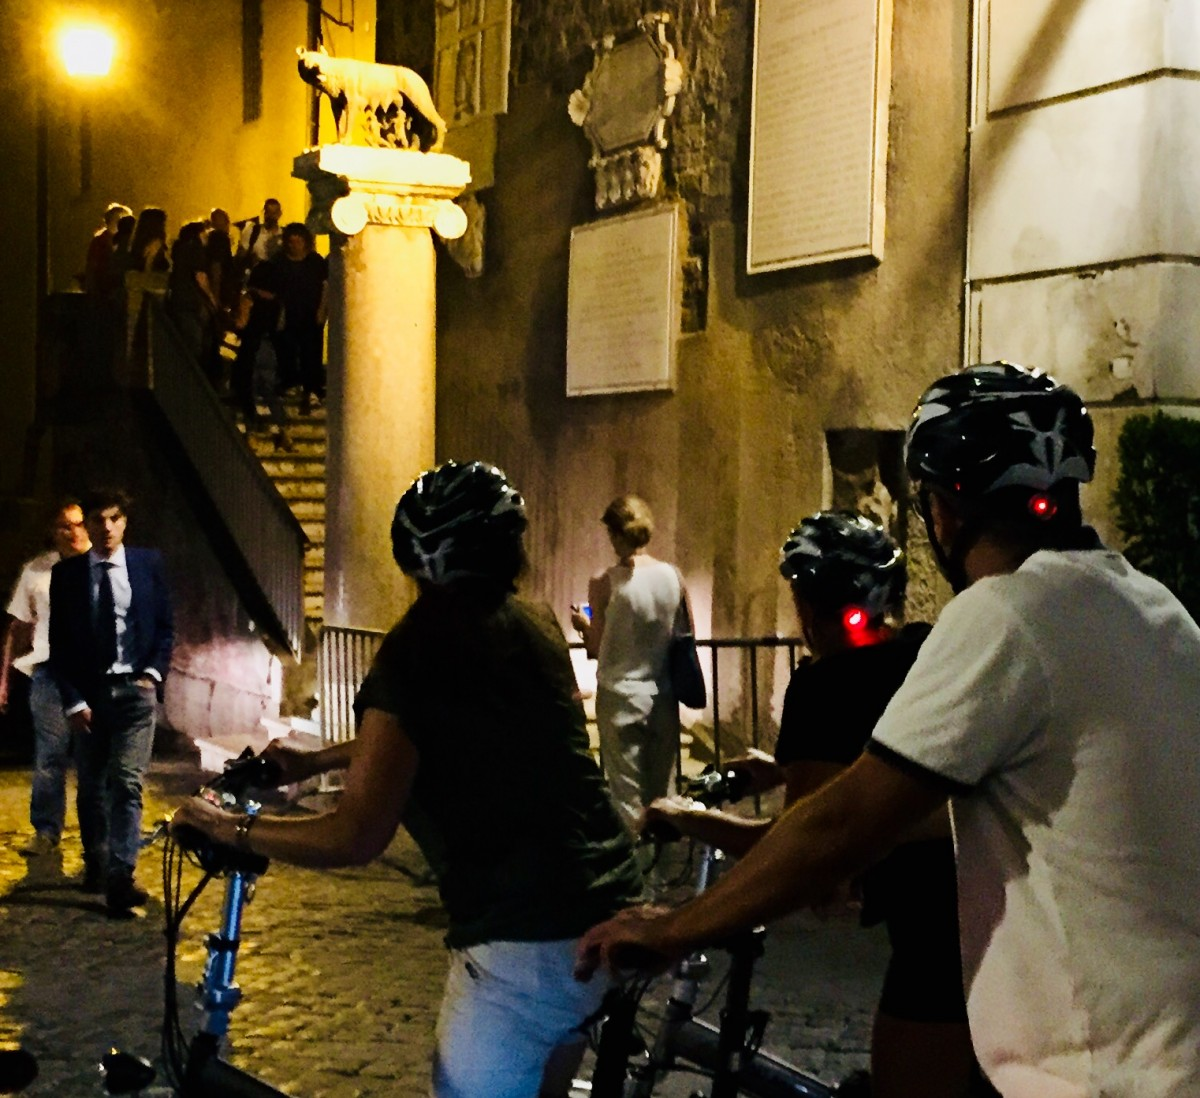 Bike Tour - Good Night Rome!